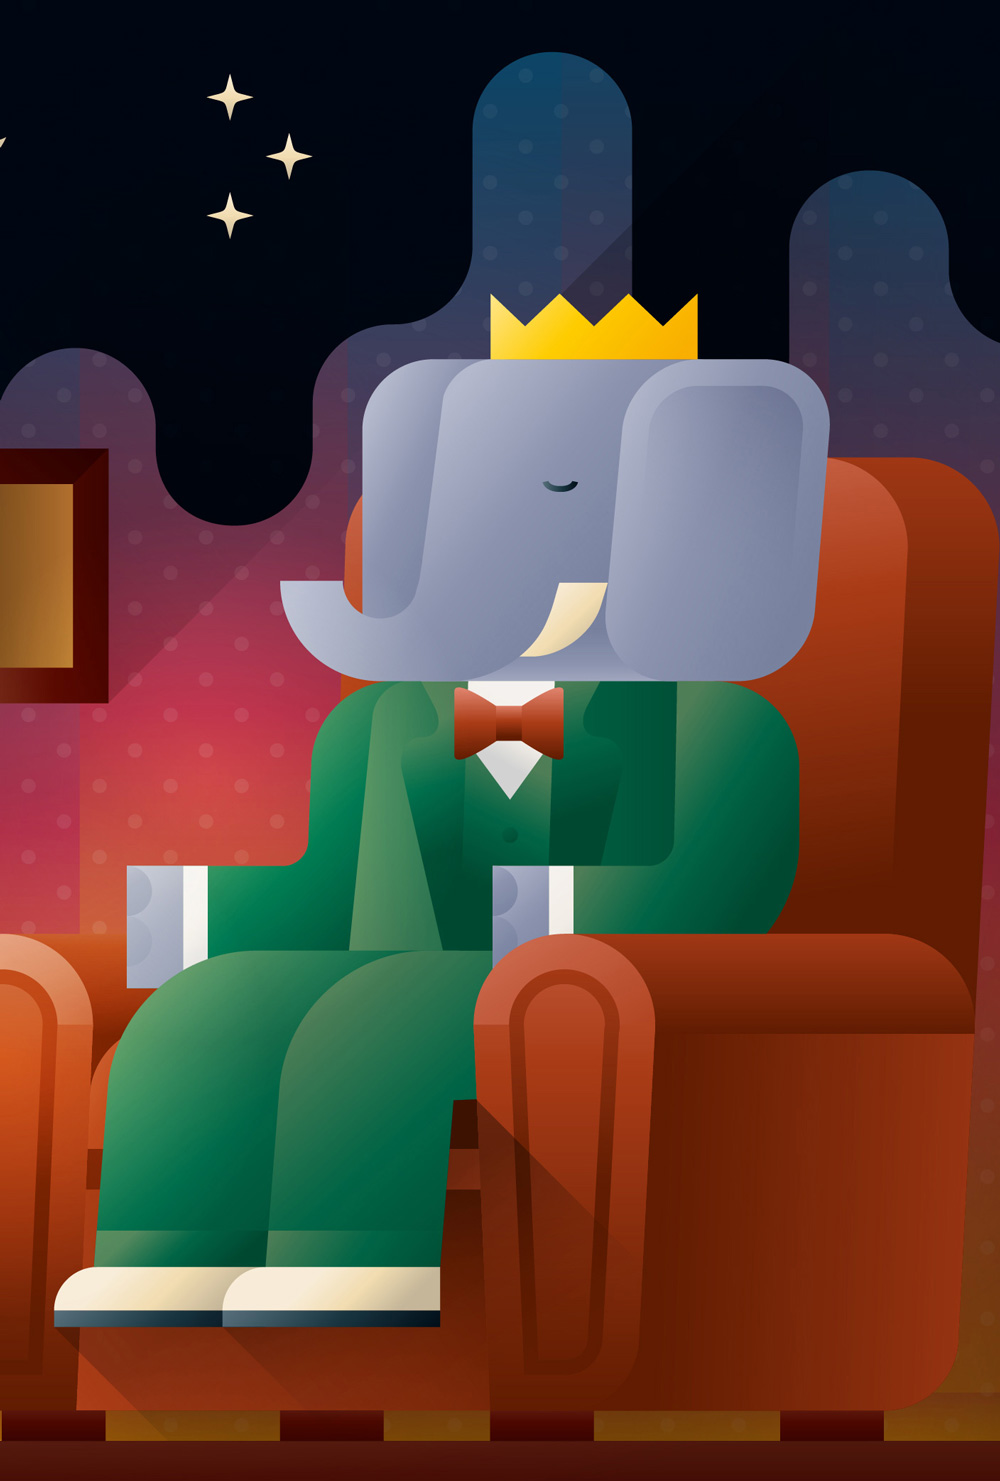 Babar in a green suit sitting on a sofa, art print illustration by Francesco Faggiano illustrator